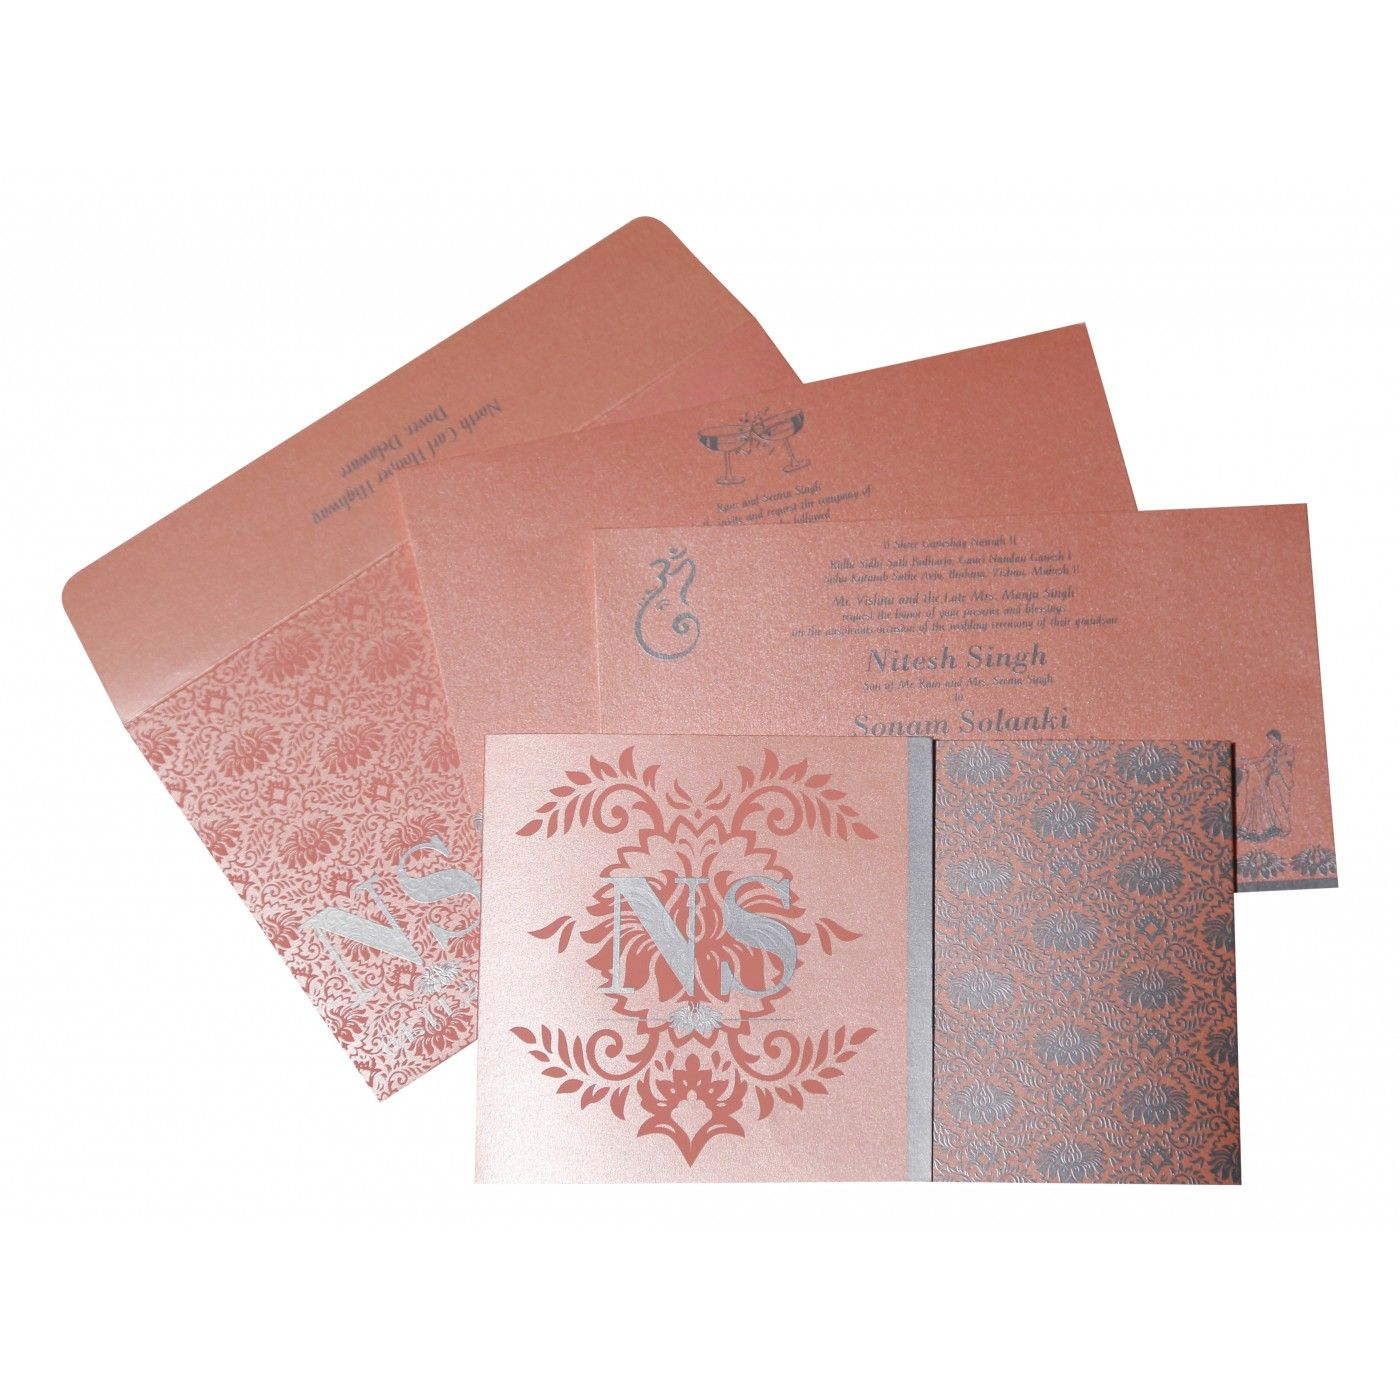 BABY PINK SHIMMERY DAMASK THEMED - SCREEN PRINTED WEDDING INVITATION : CG-8261D - IndianWeddingCards